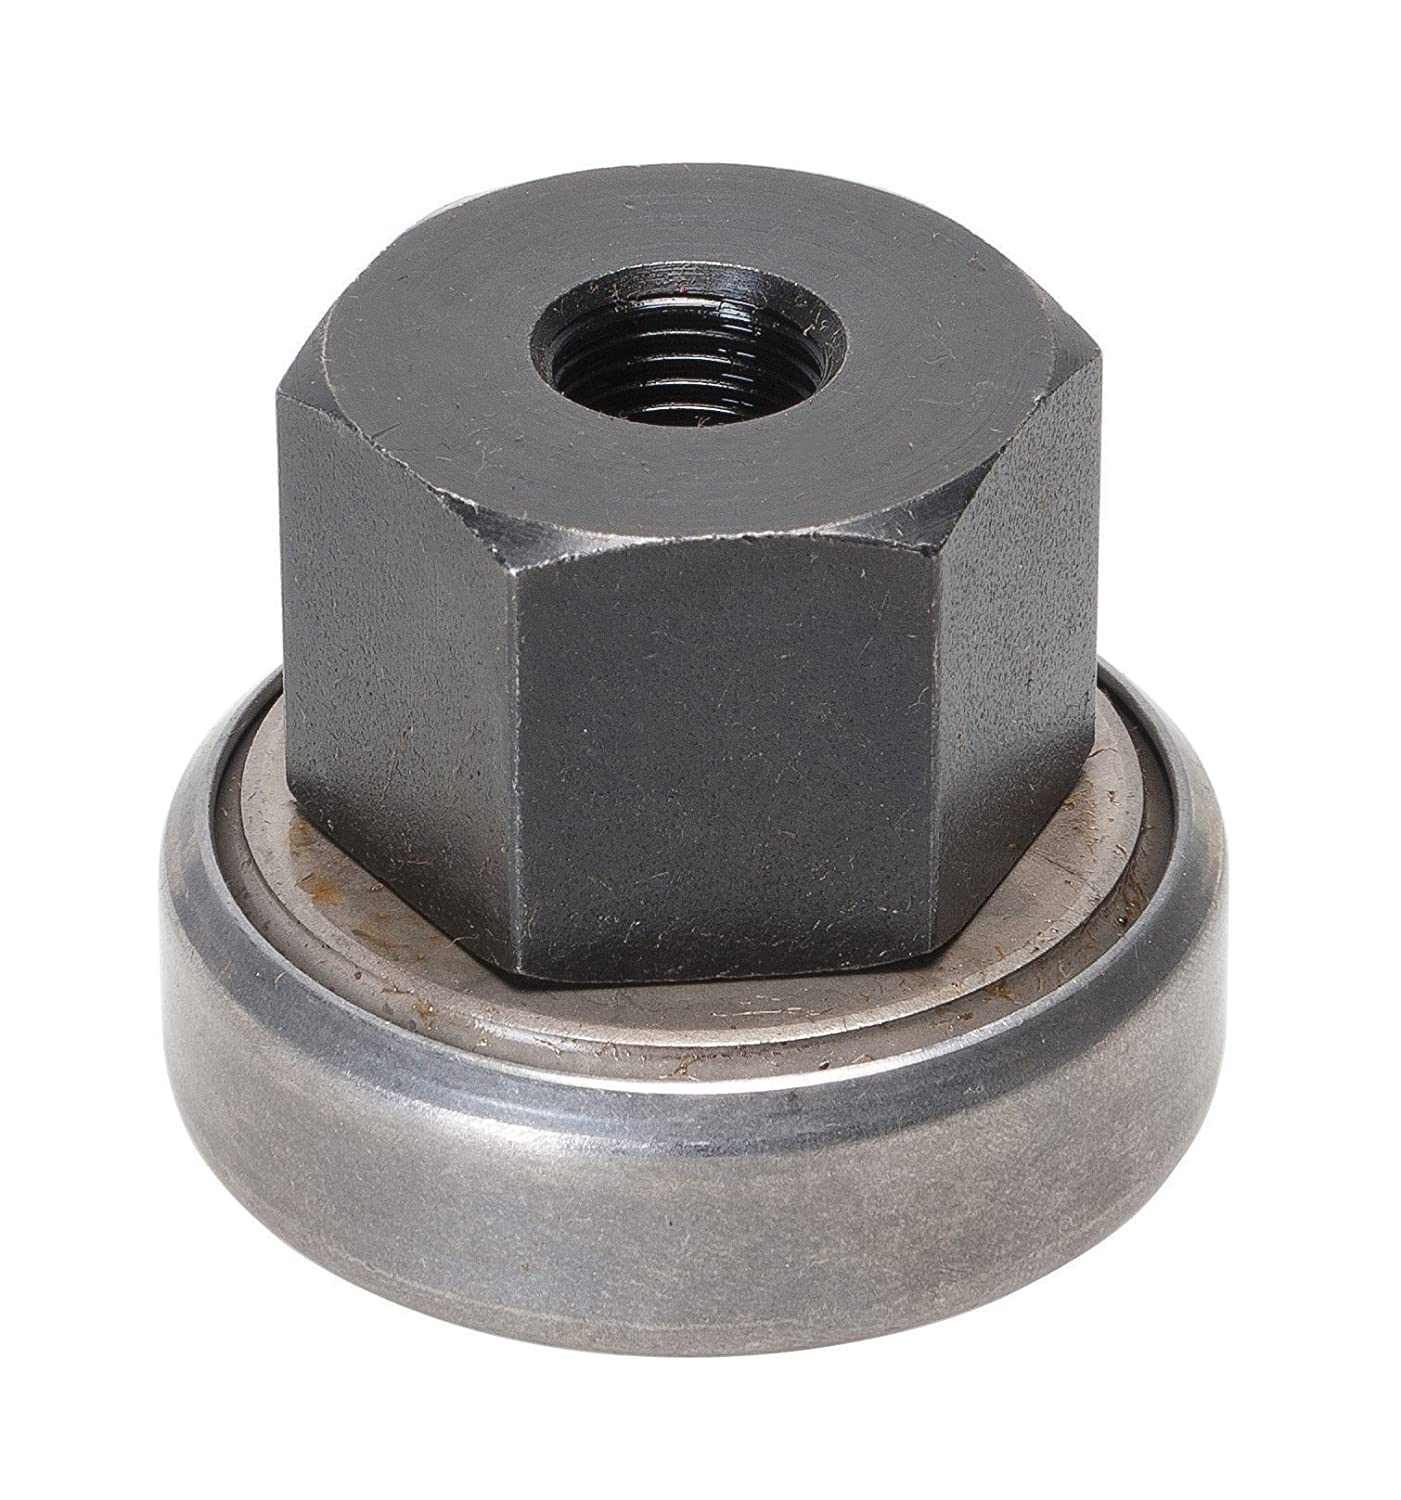 Greenlee 60165 Ball Bearing Drive Nut Replacement for Special Application Punches 1 2 Inch